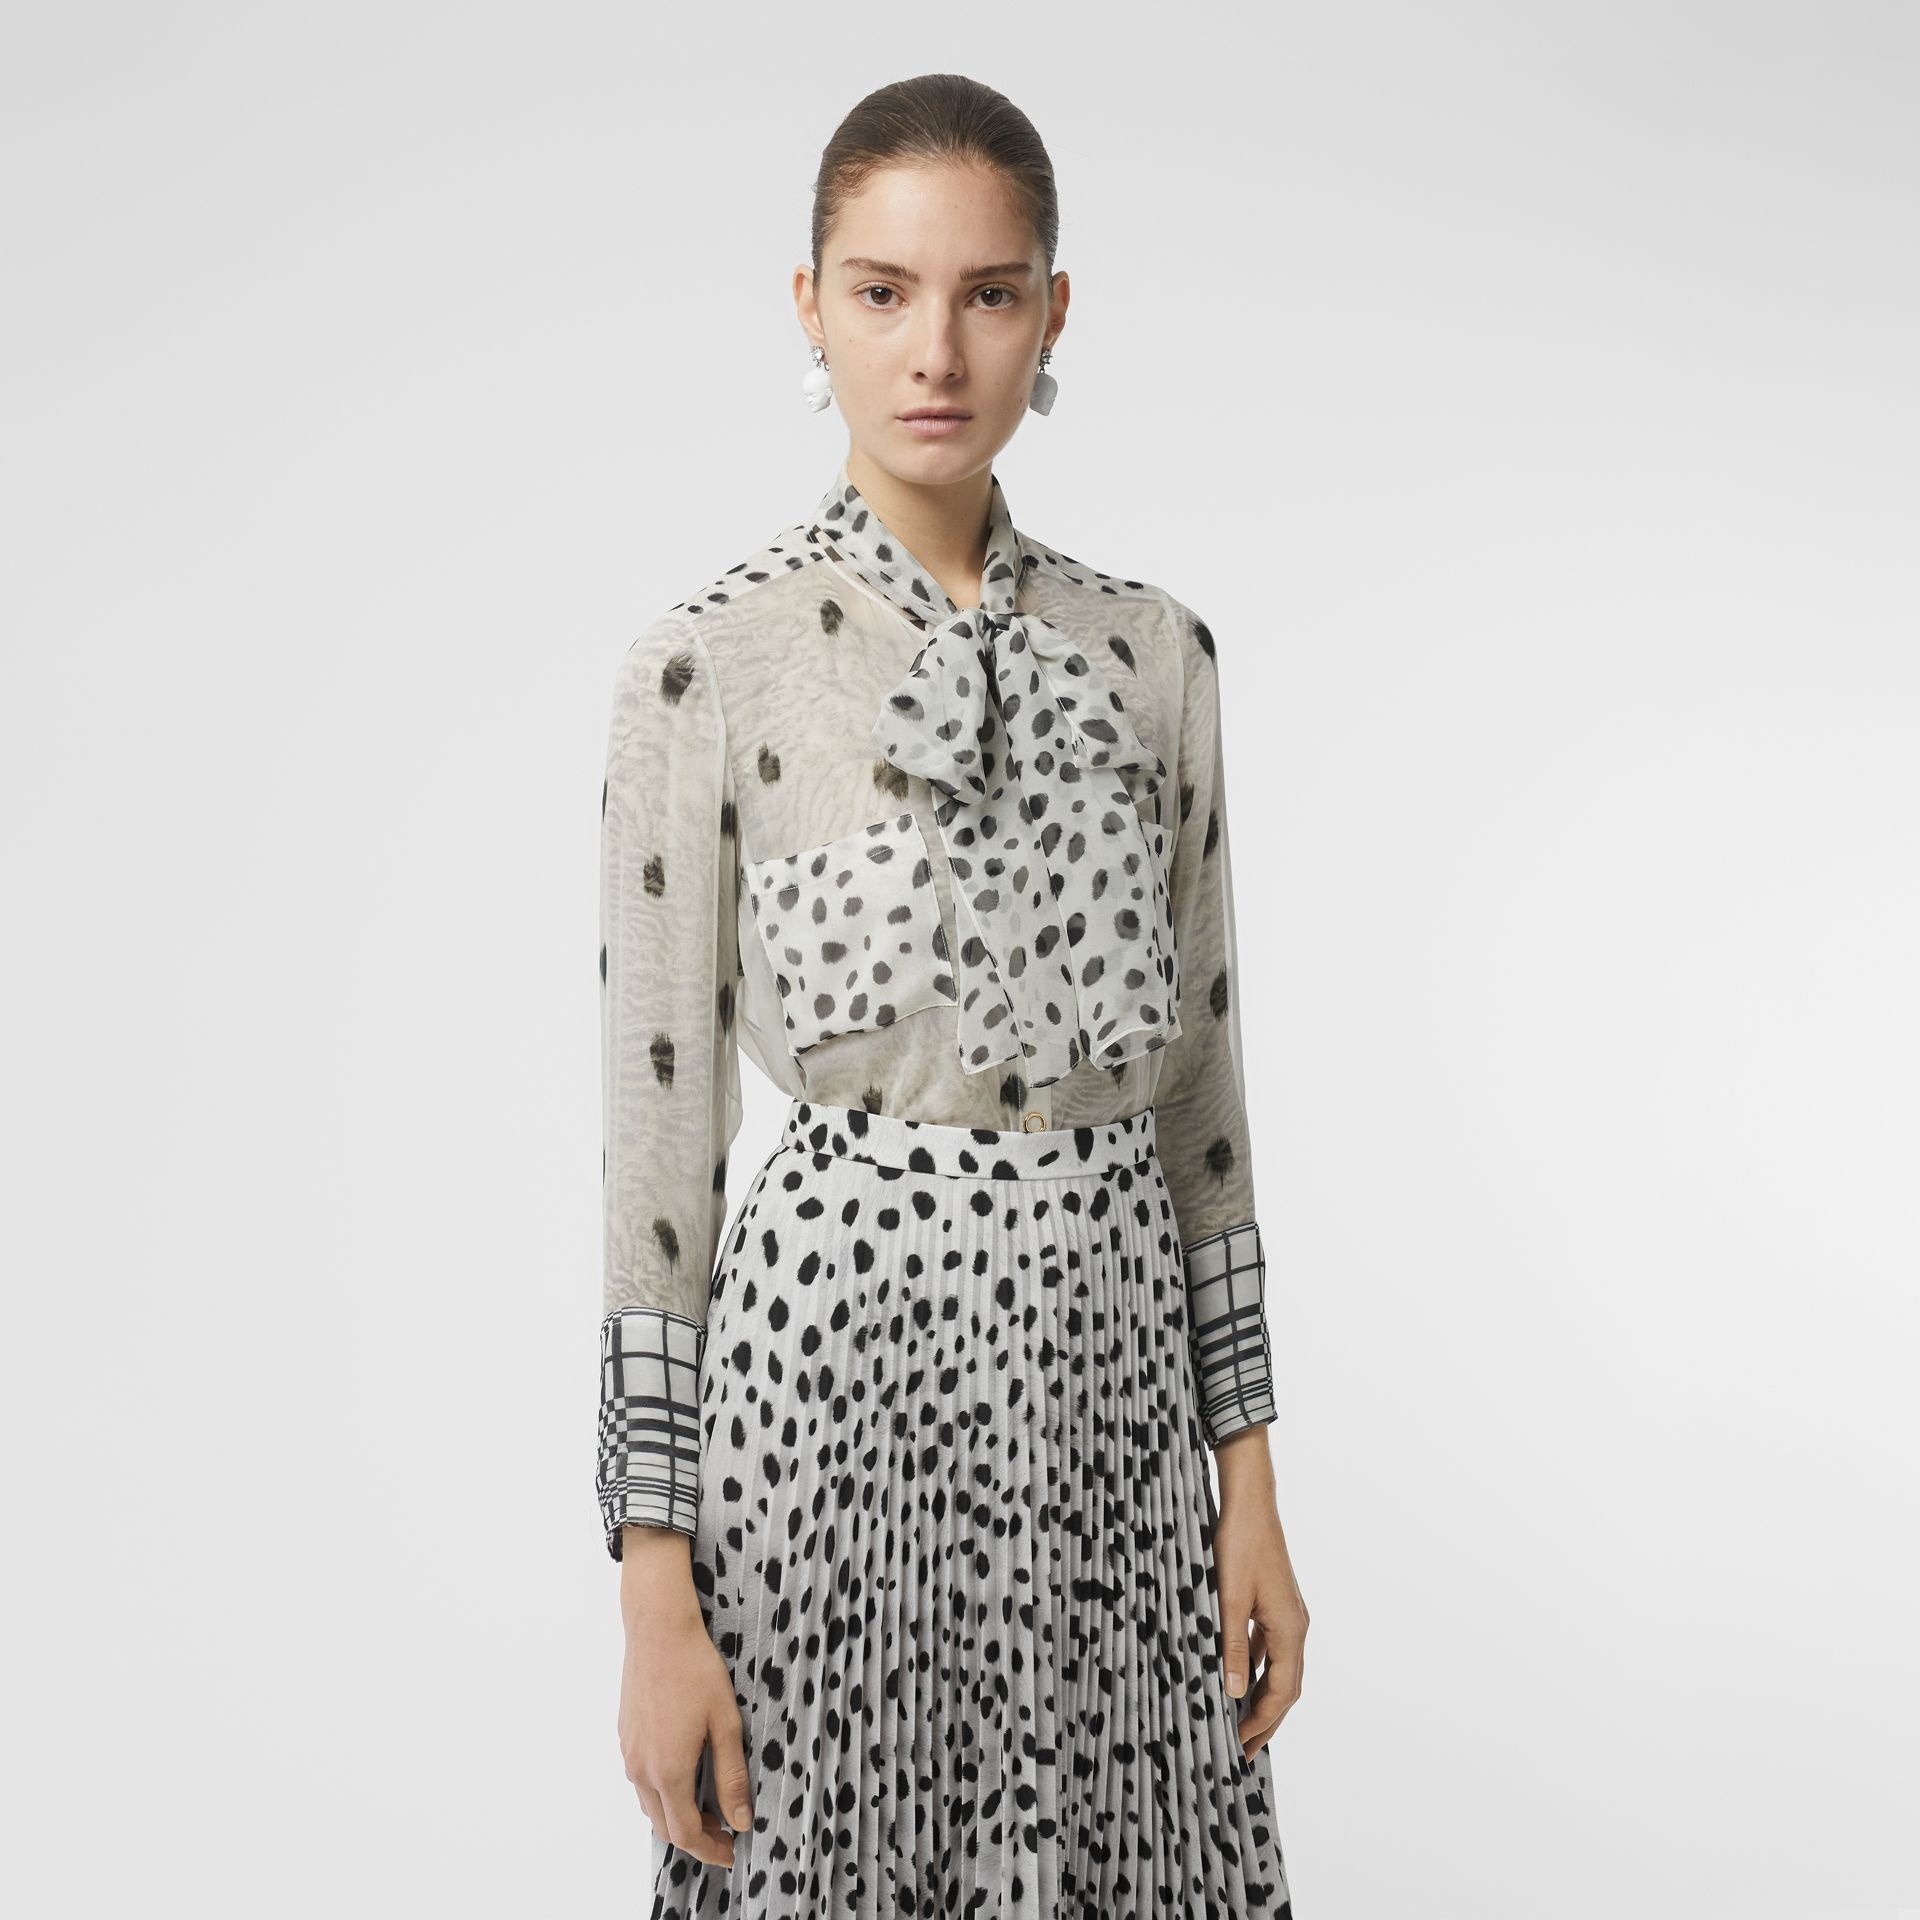 Dalmatian Print Silk Pussy-bow Blouse in Black/white - Women | Burberry United Kingdom - gallery image 0